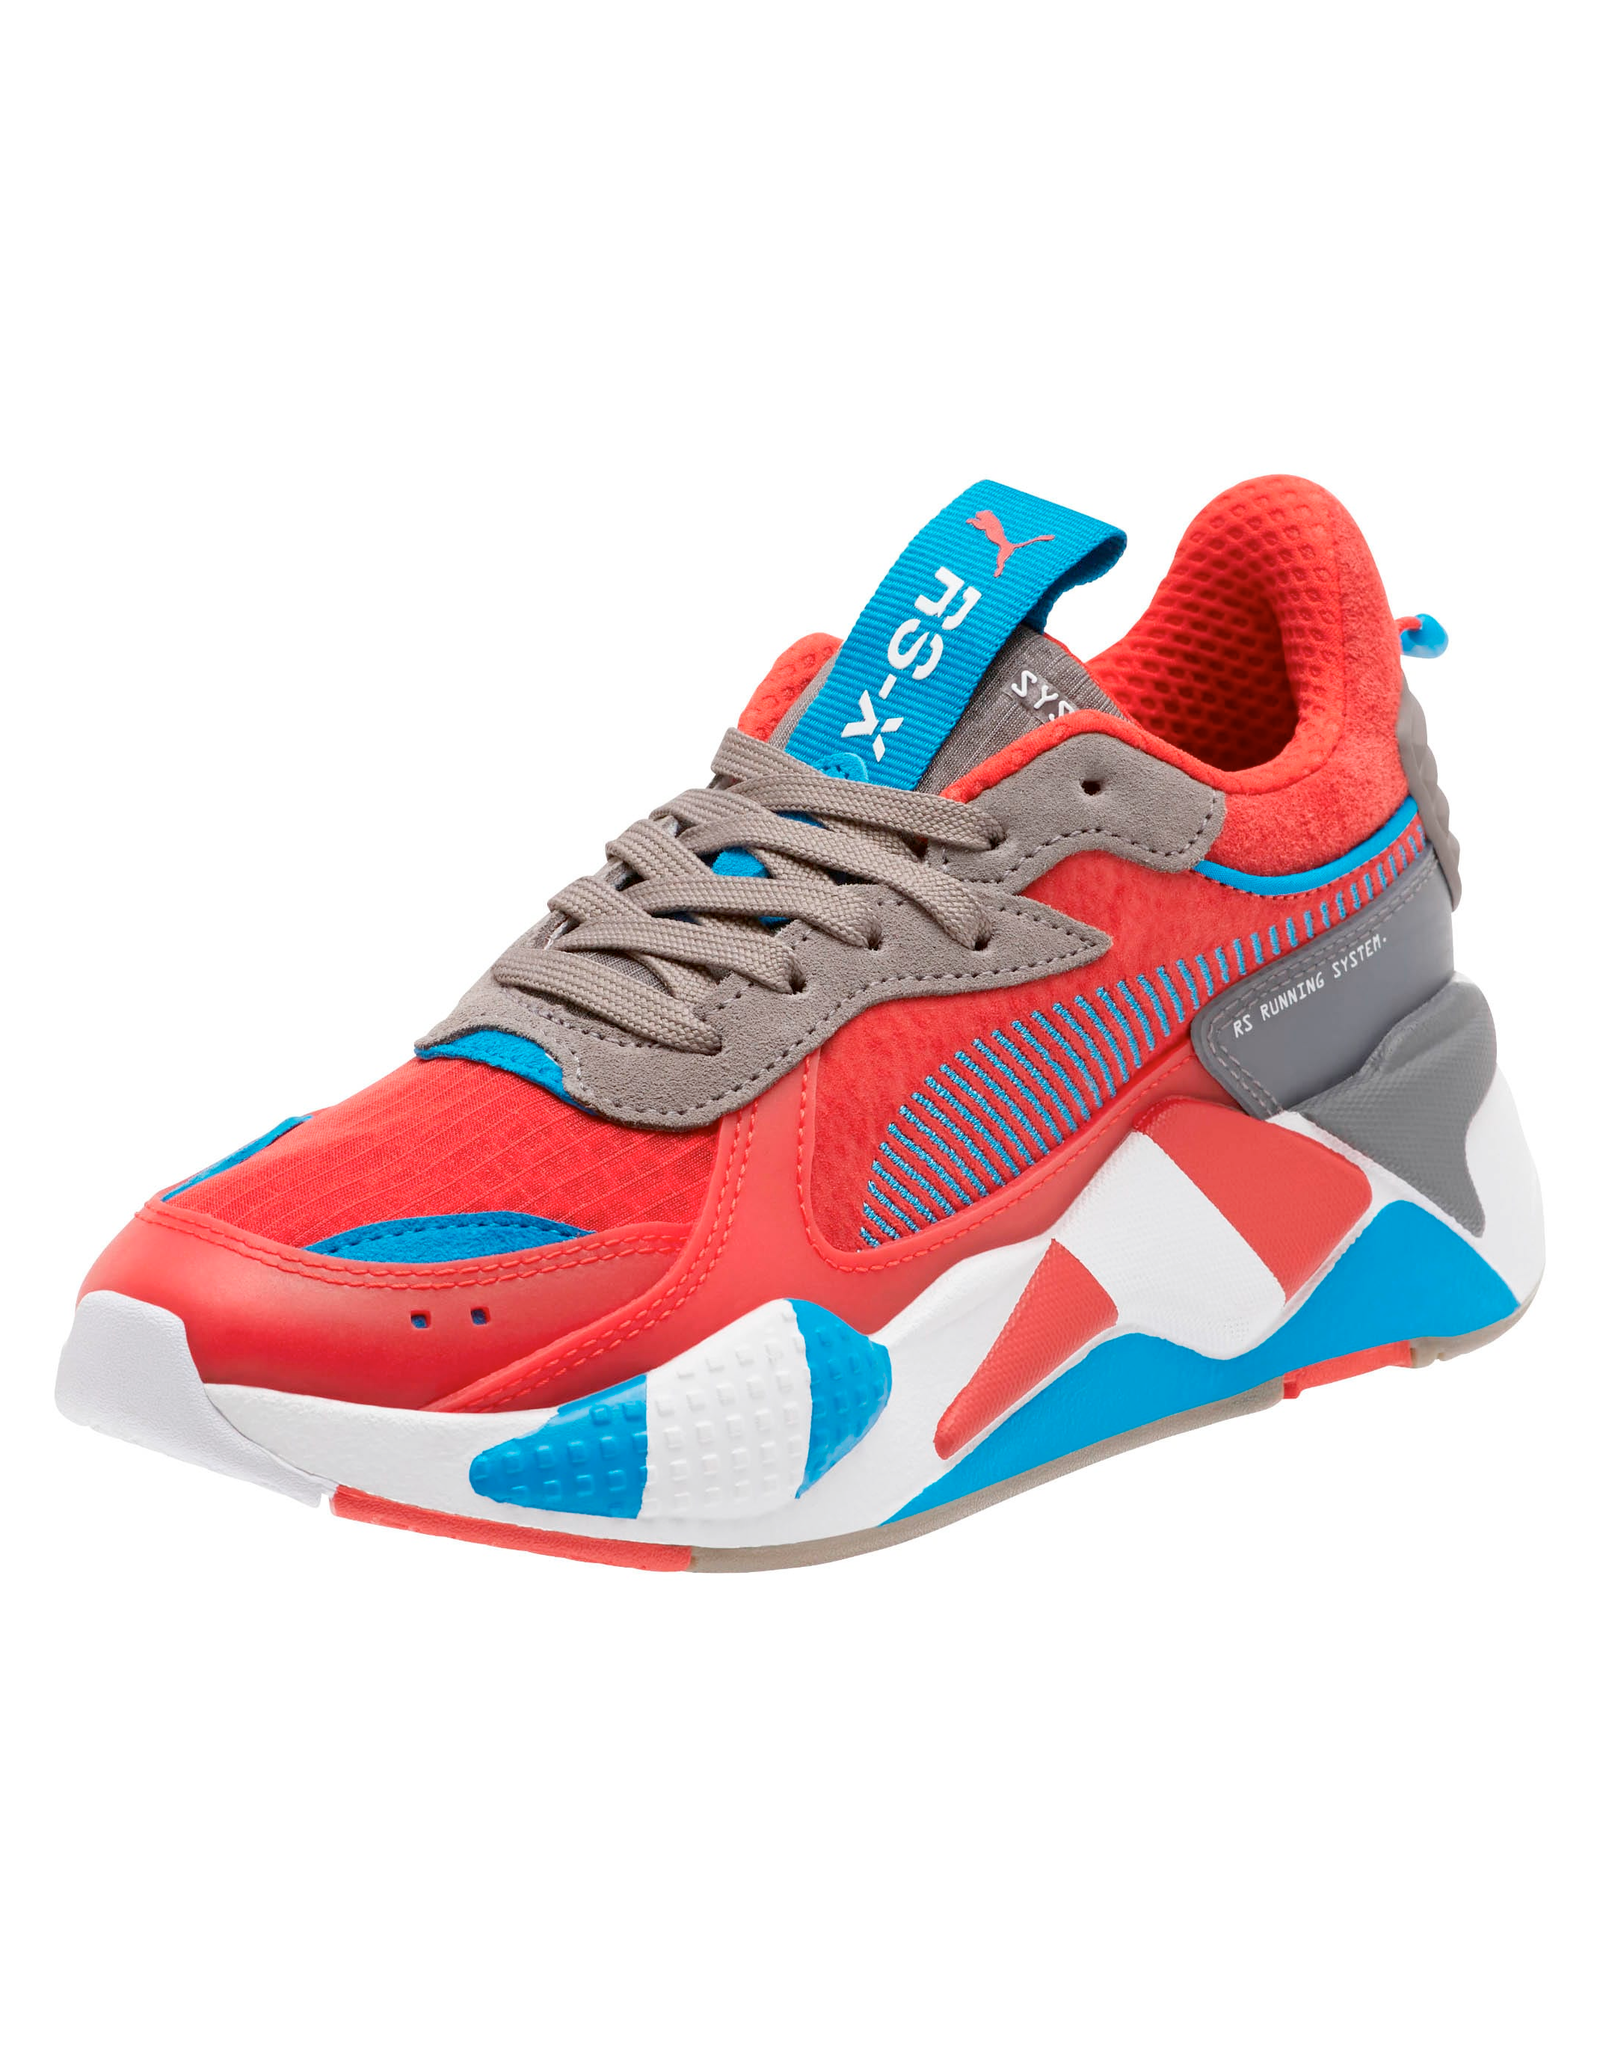 RS-X RETRO - BCF Sporting Goods and